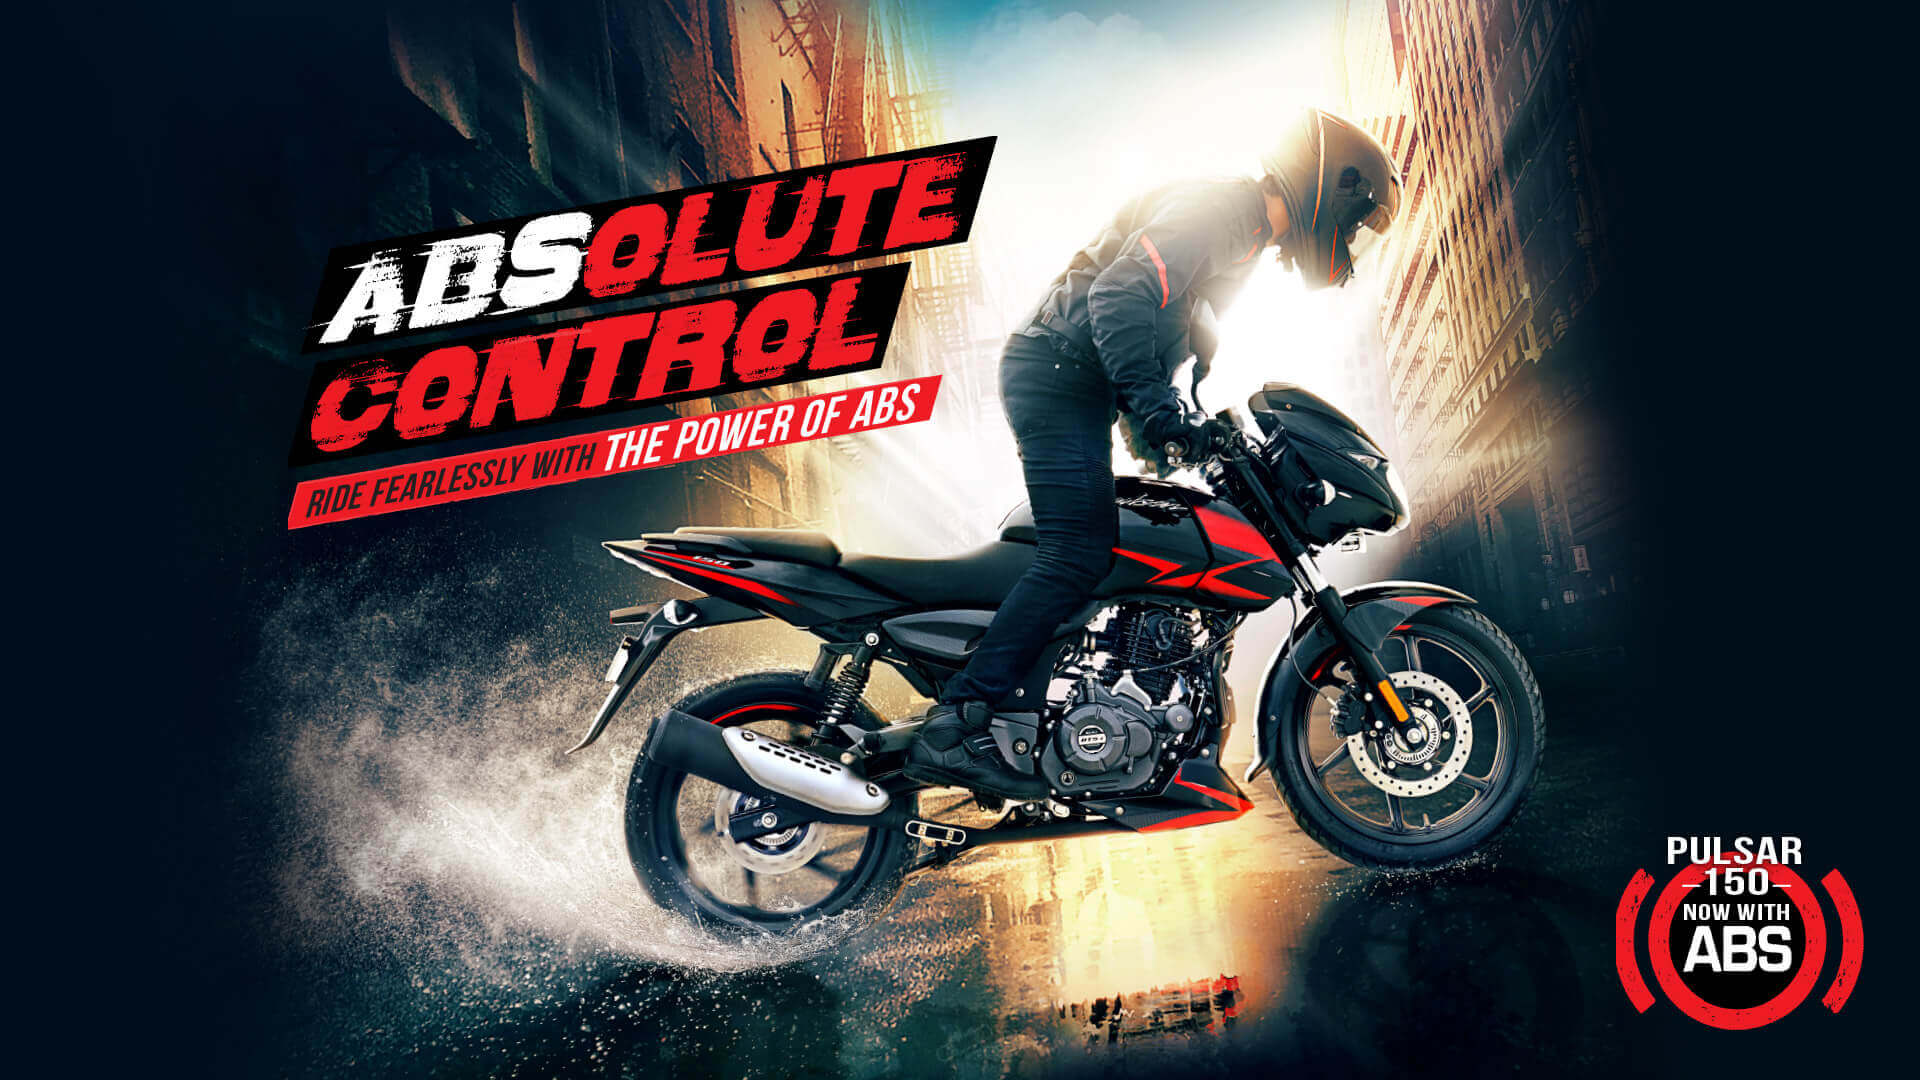 Bajaj Pulsar 150 Twin Disc - Now with ABS for Absolute Control